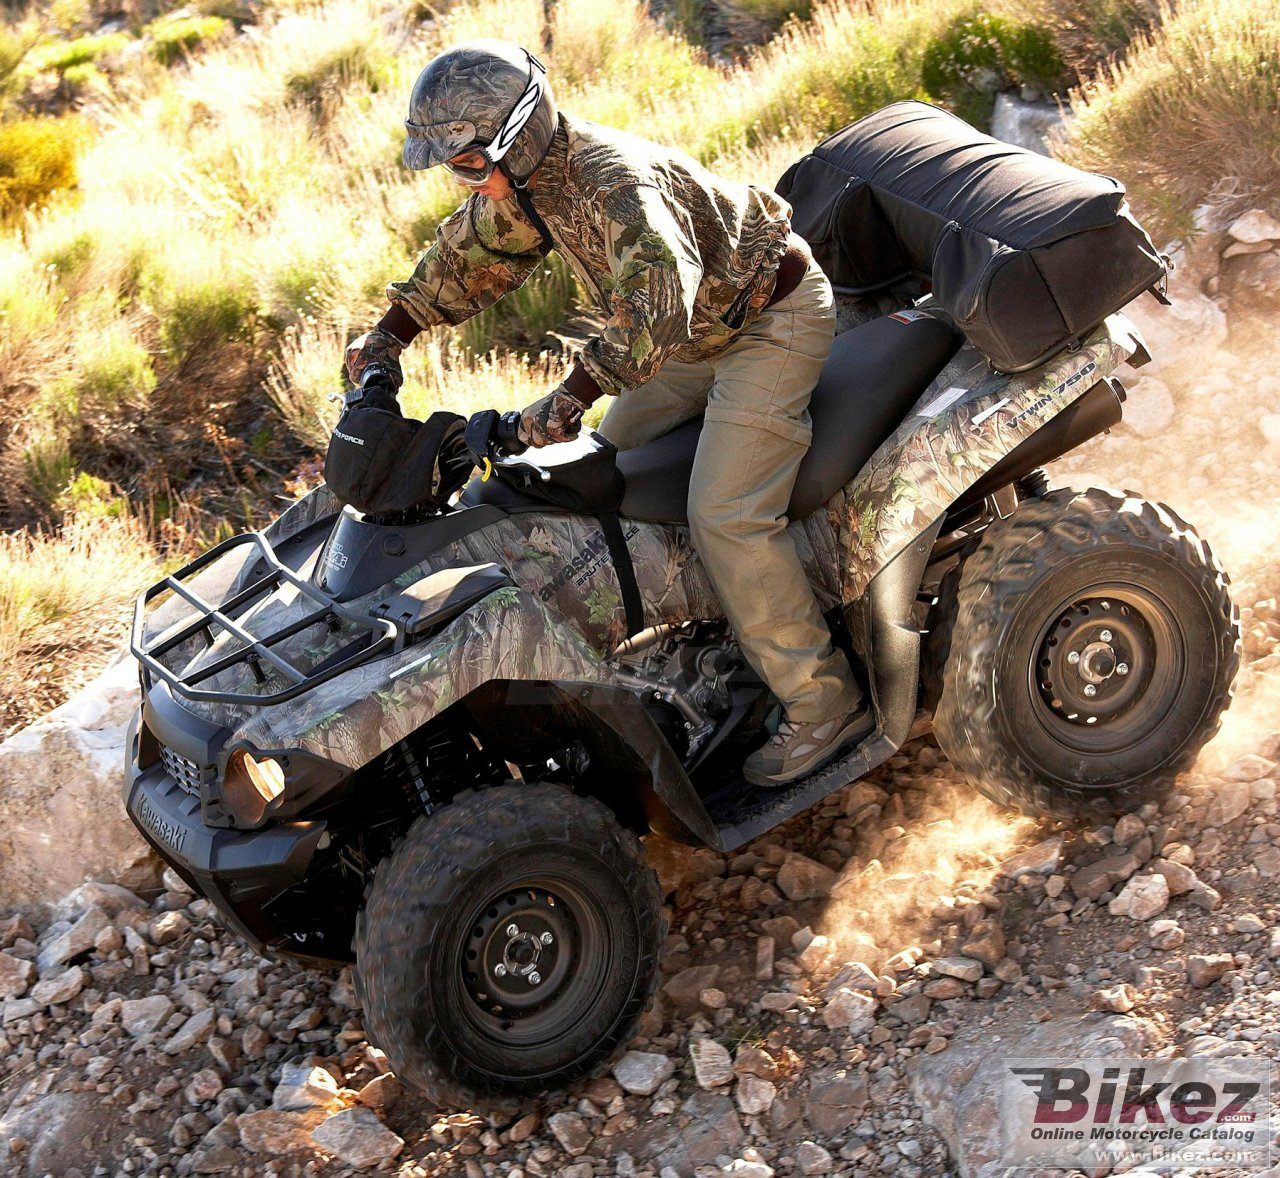 Big Kawasaki brute force 750 4x4i camo picture and wallpaper from Bikez.com